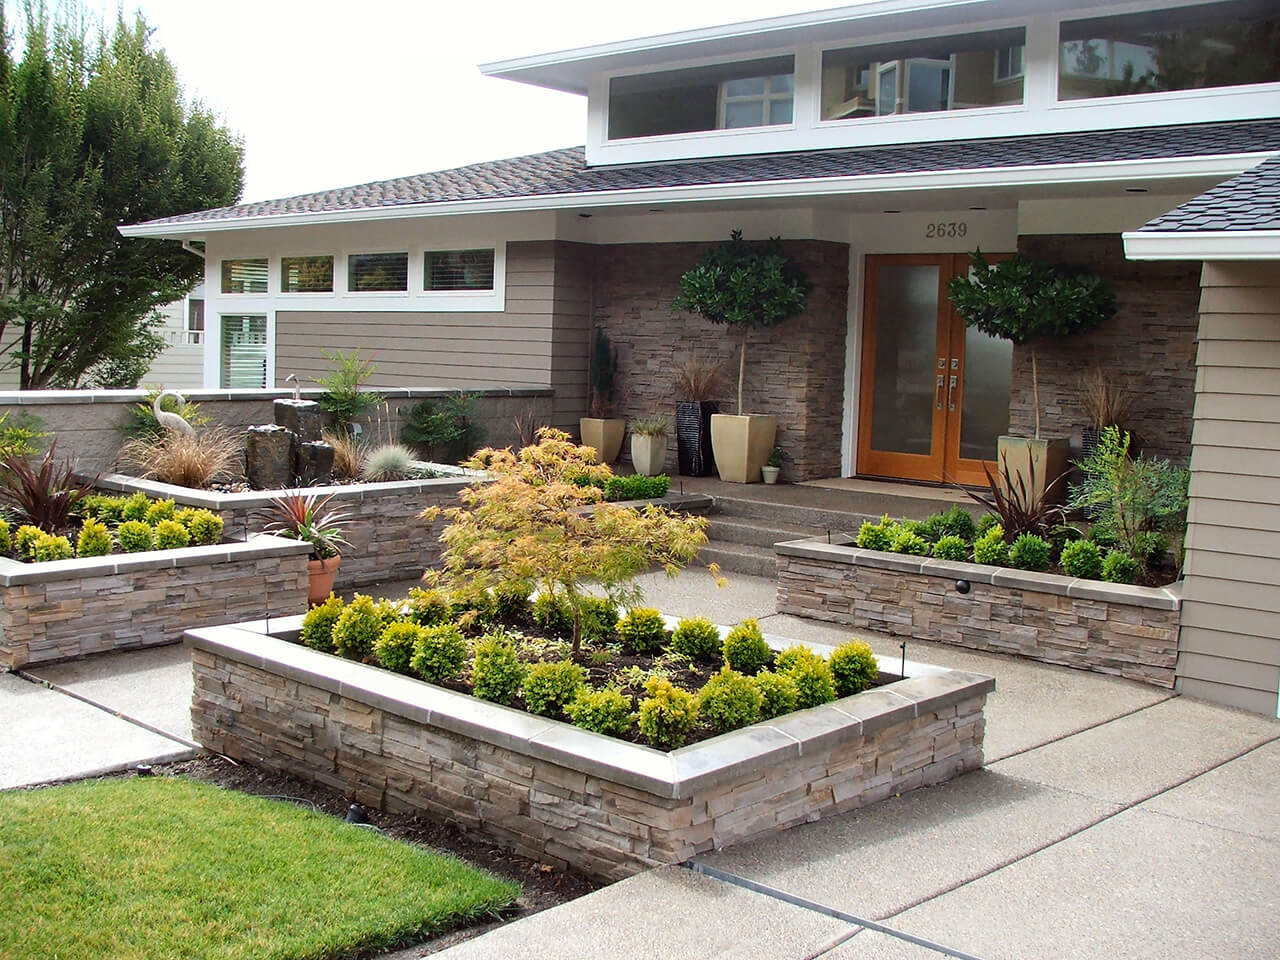 50 best front yard landscaping ideas and garden designs for Front yard garden ideas designs